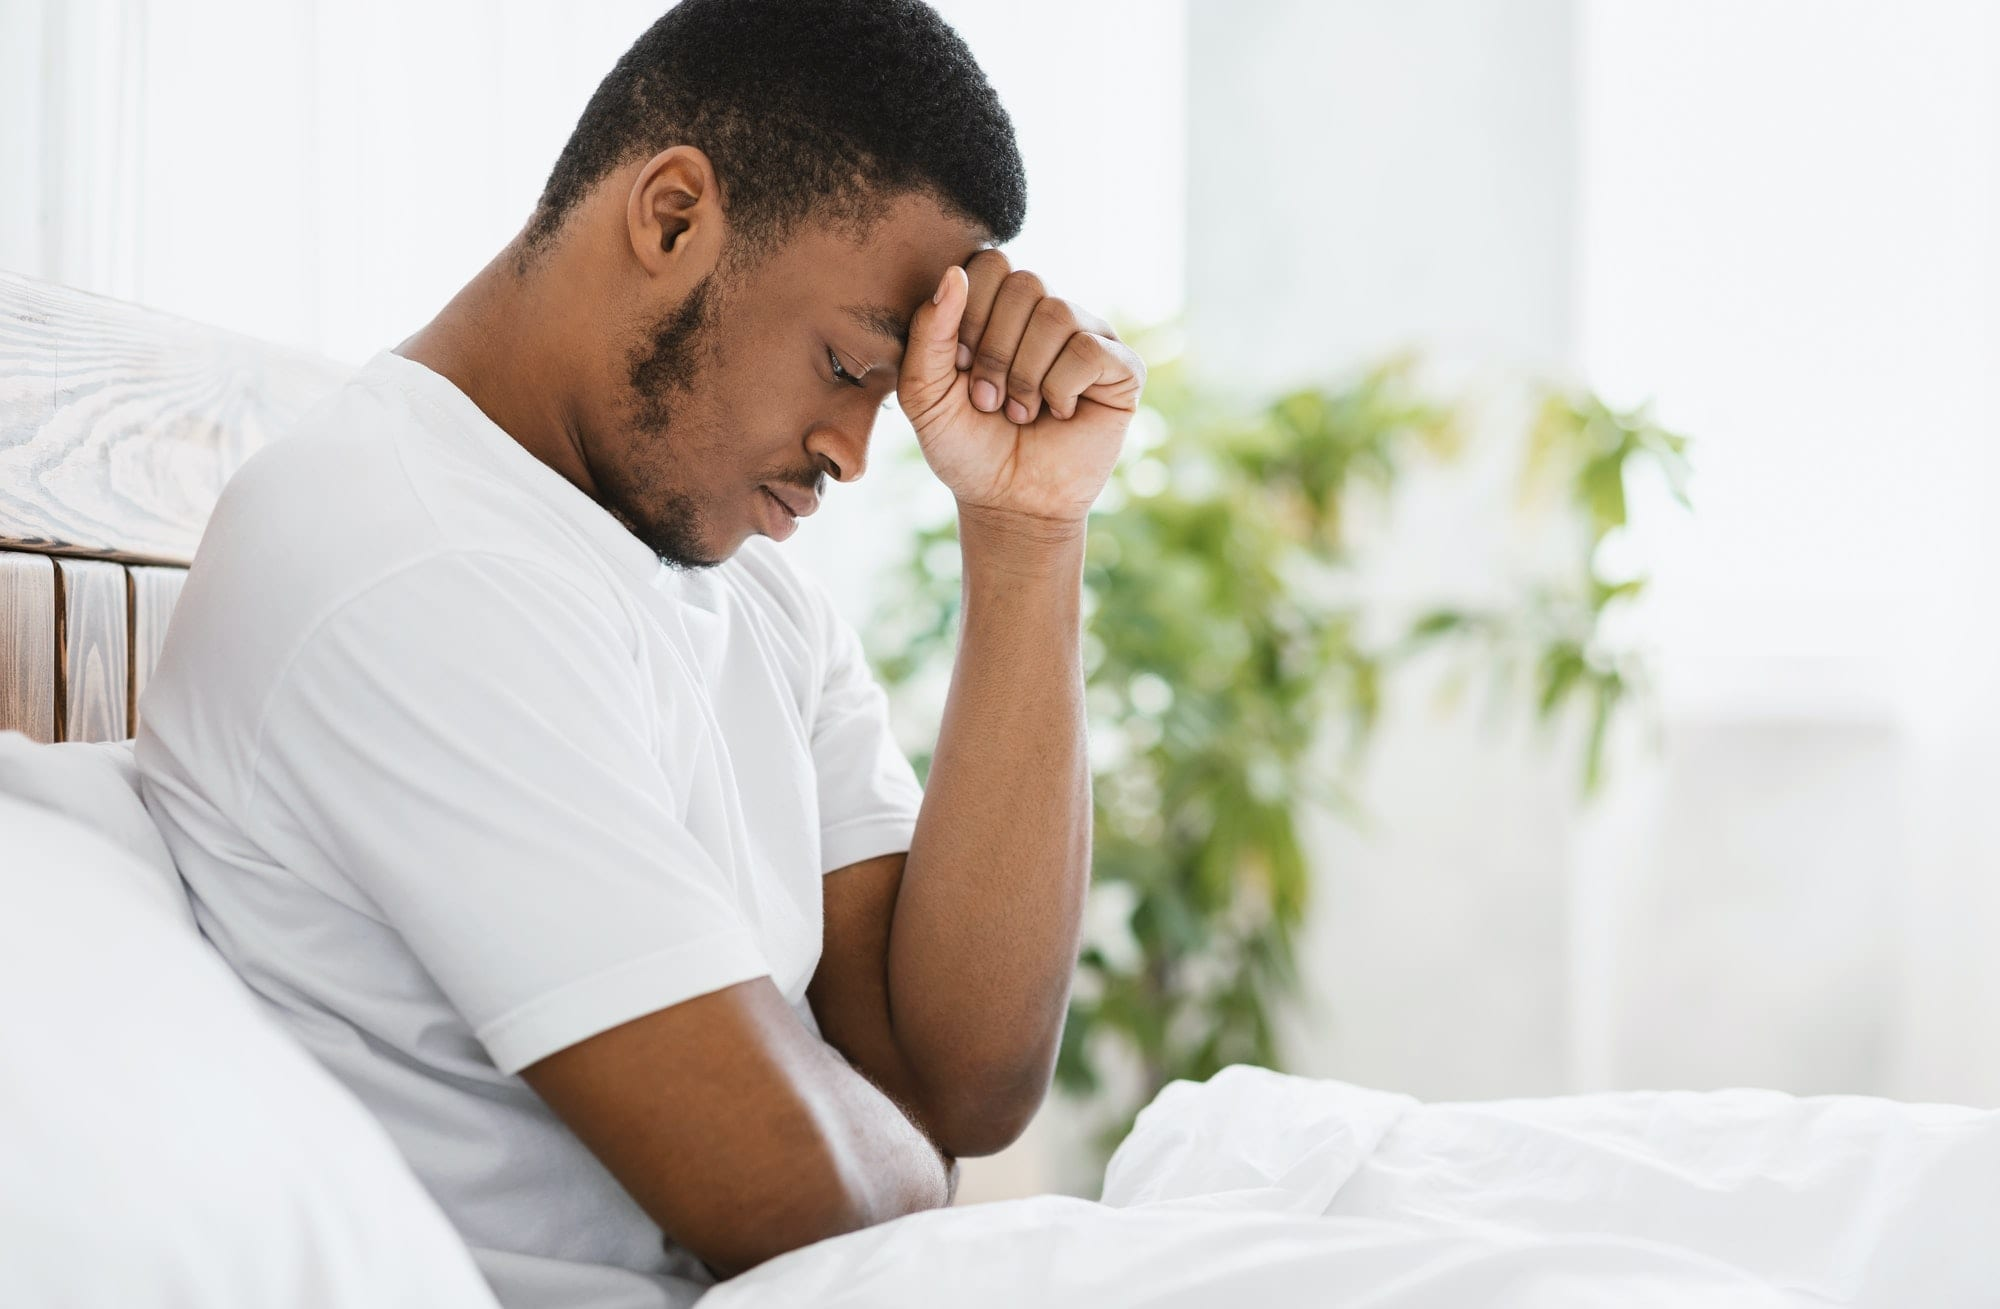 African American Man Suffering Depression Sitting In Bed At Home